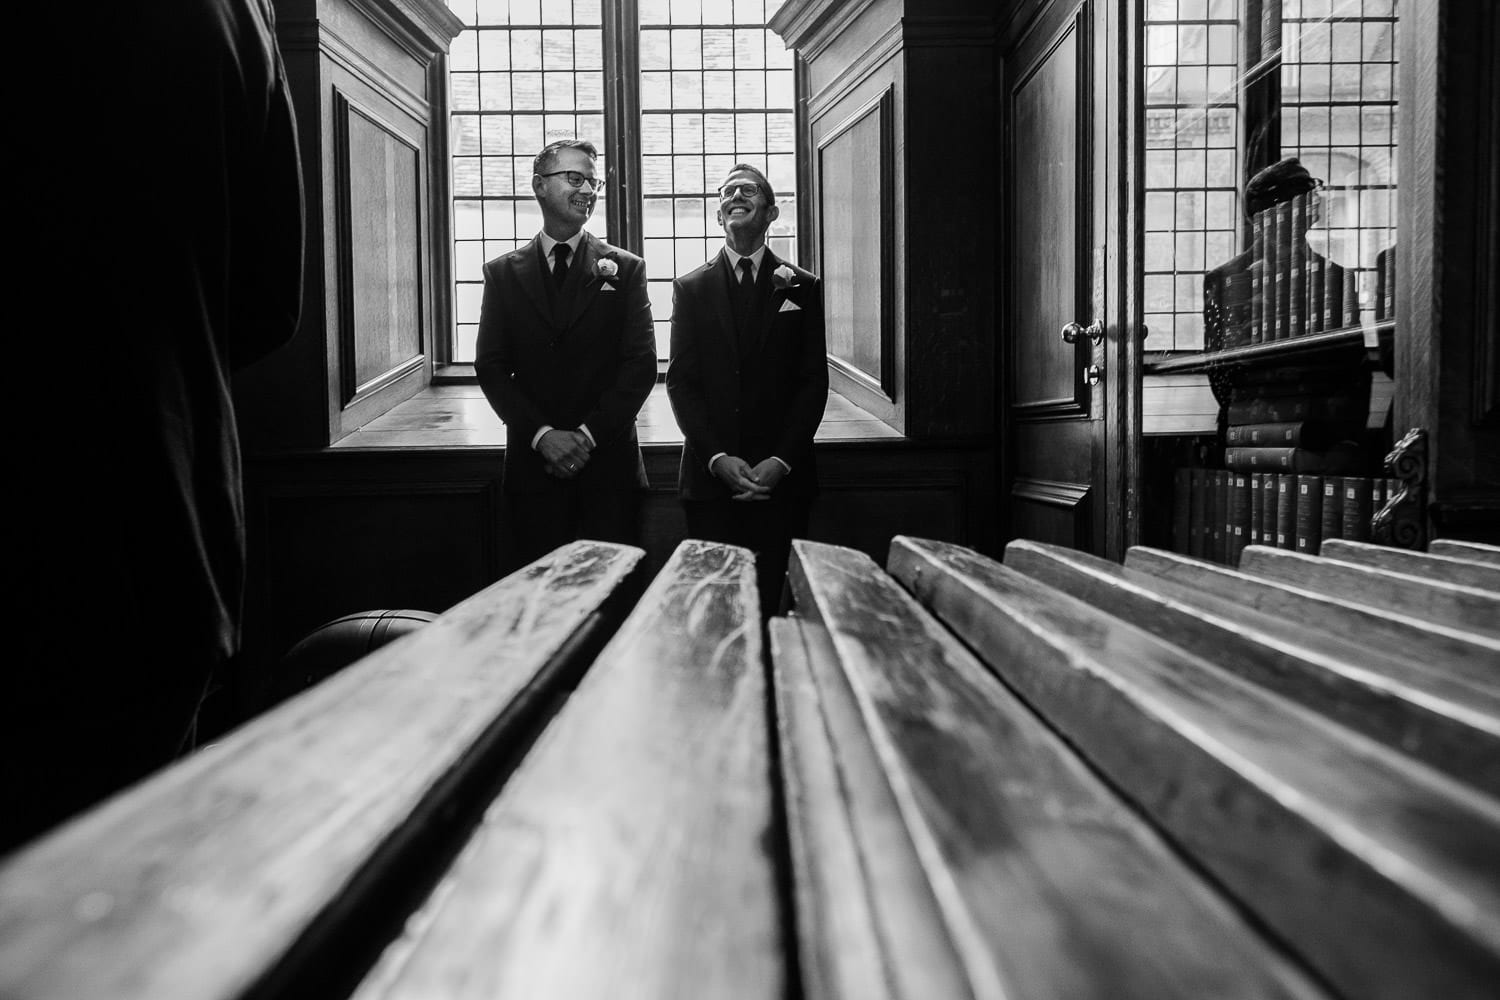 The grooms wait to be introduced